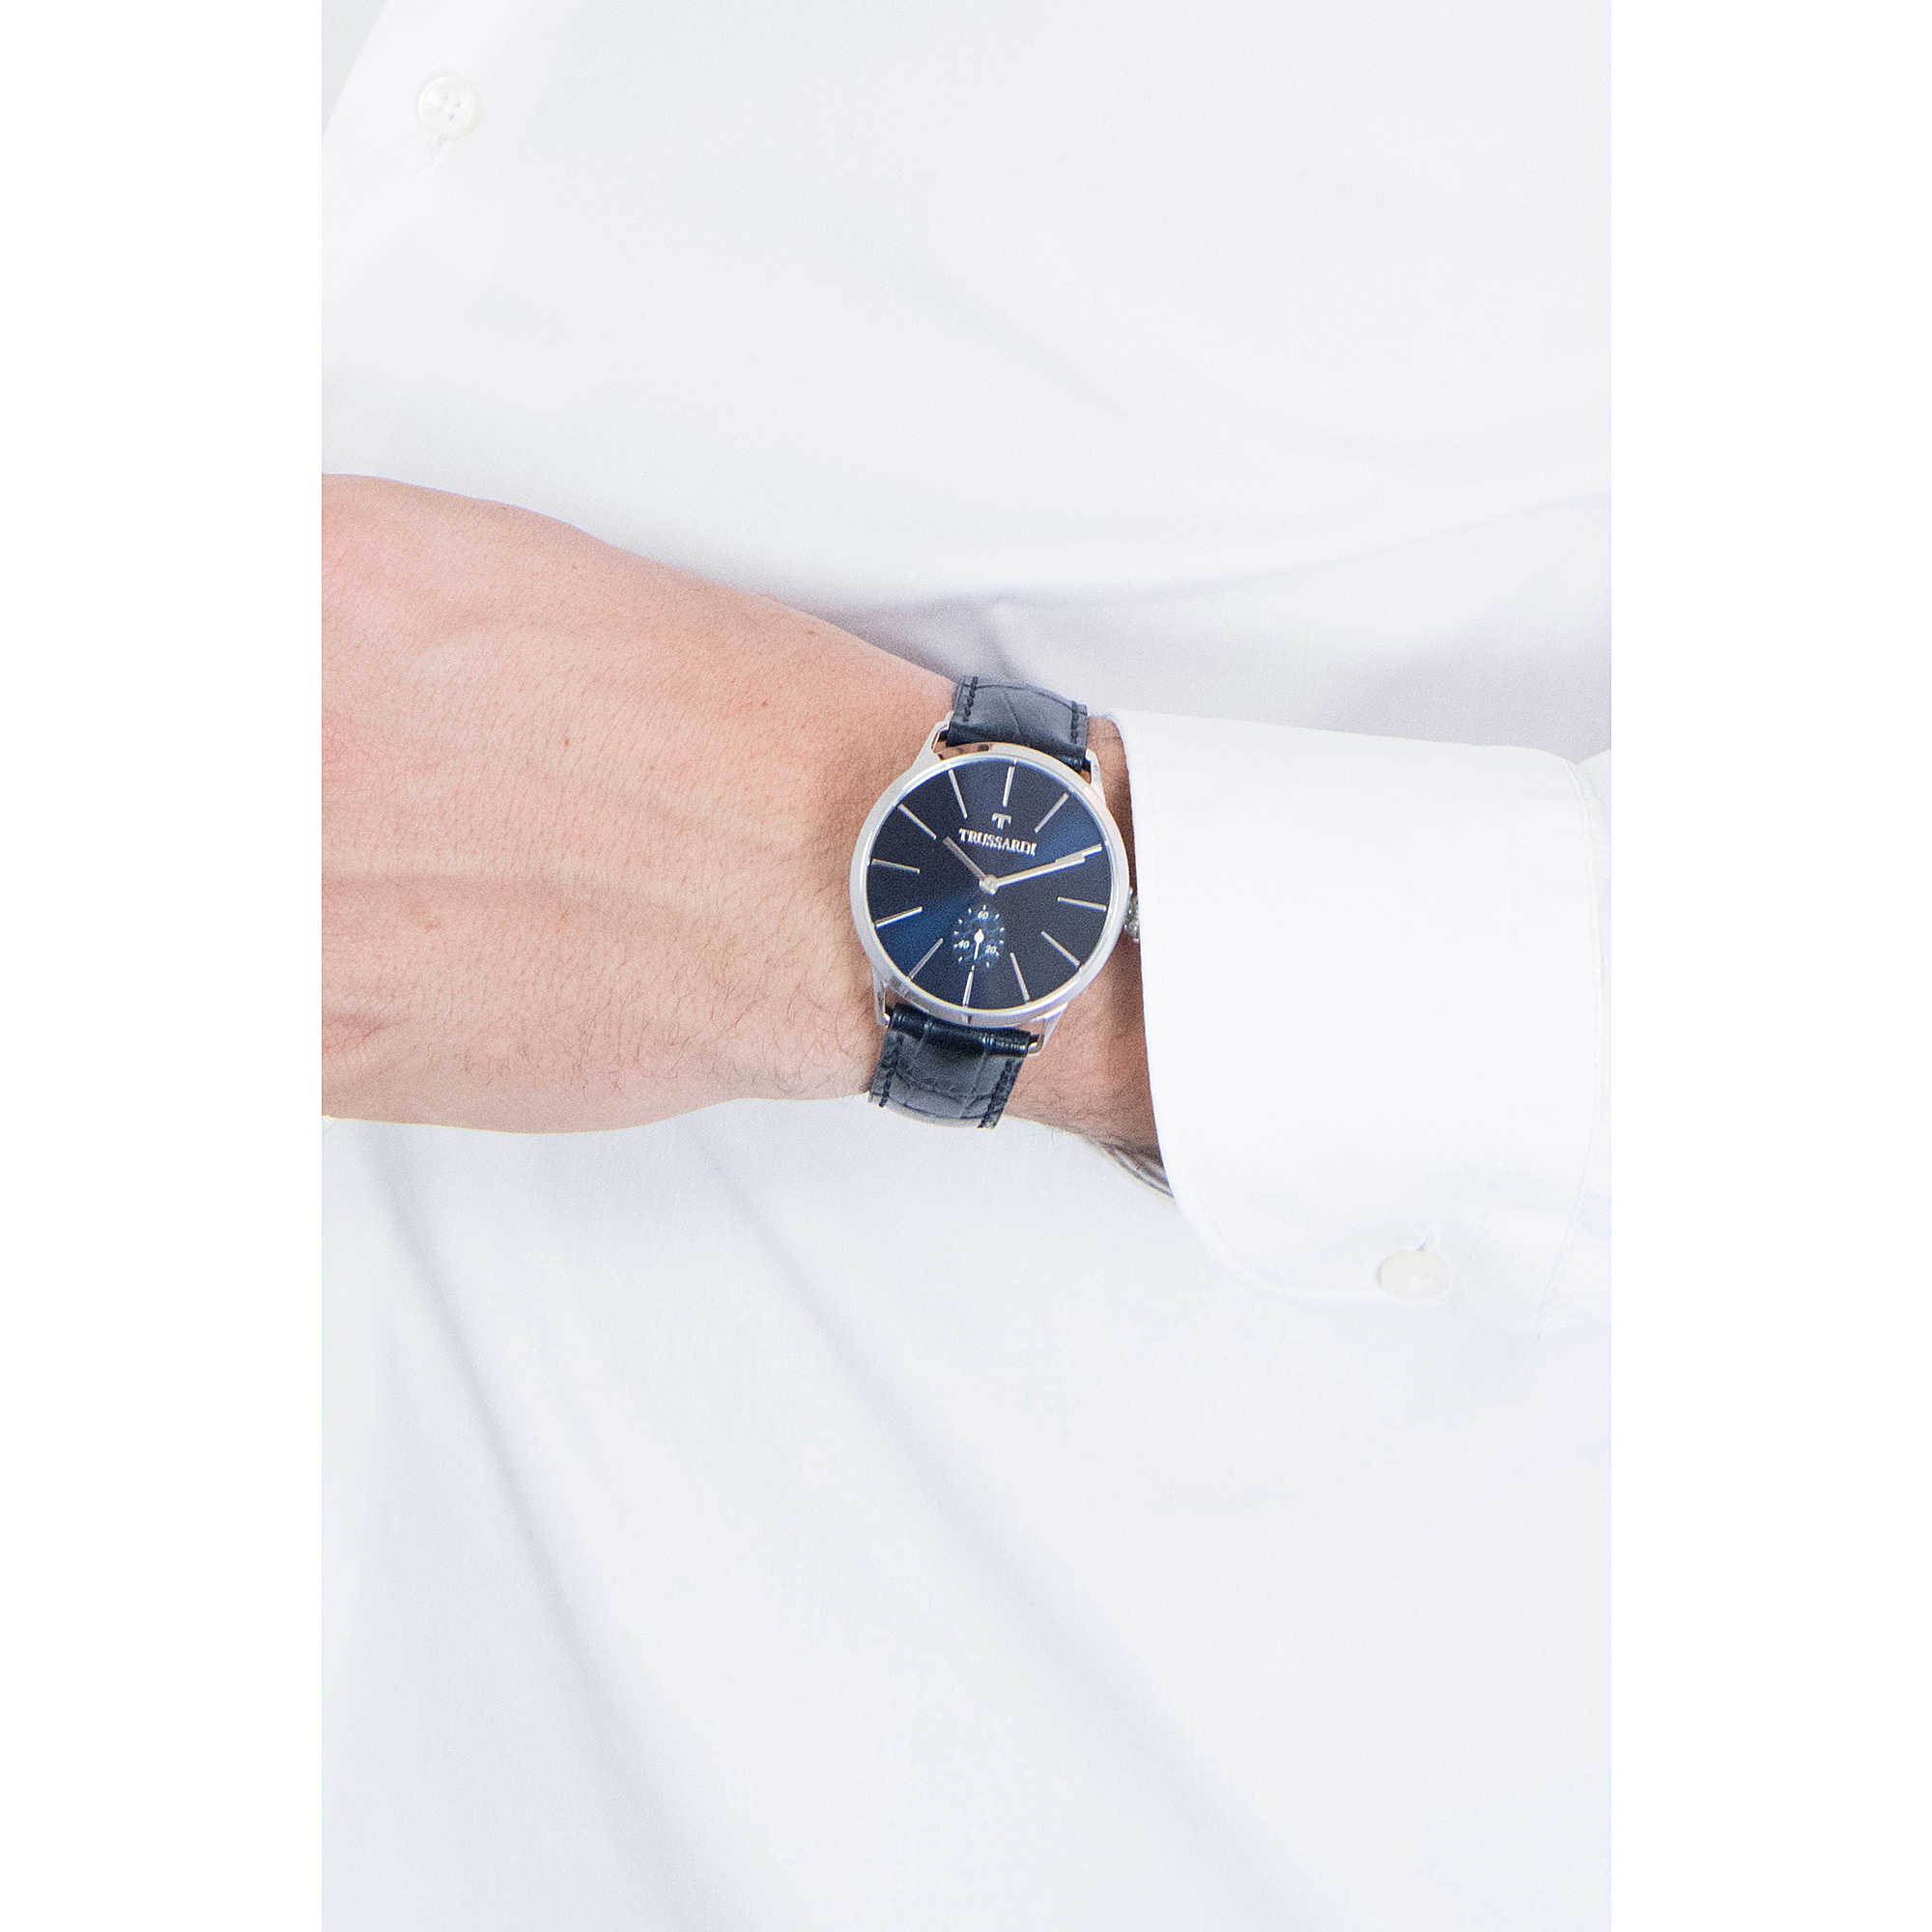 zoom. package only time Trussardi R2451116003. zoom. watch only time man  Trussardi Vintage R2451116003. zoom 7d5b6ca38e4